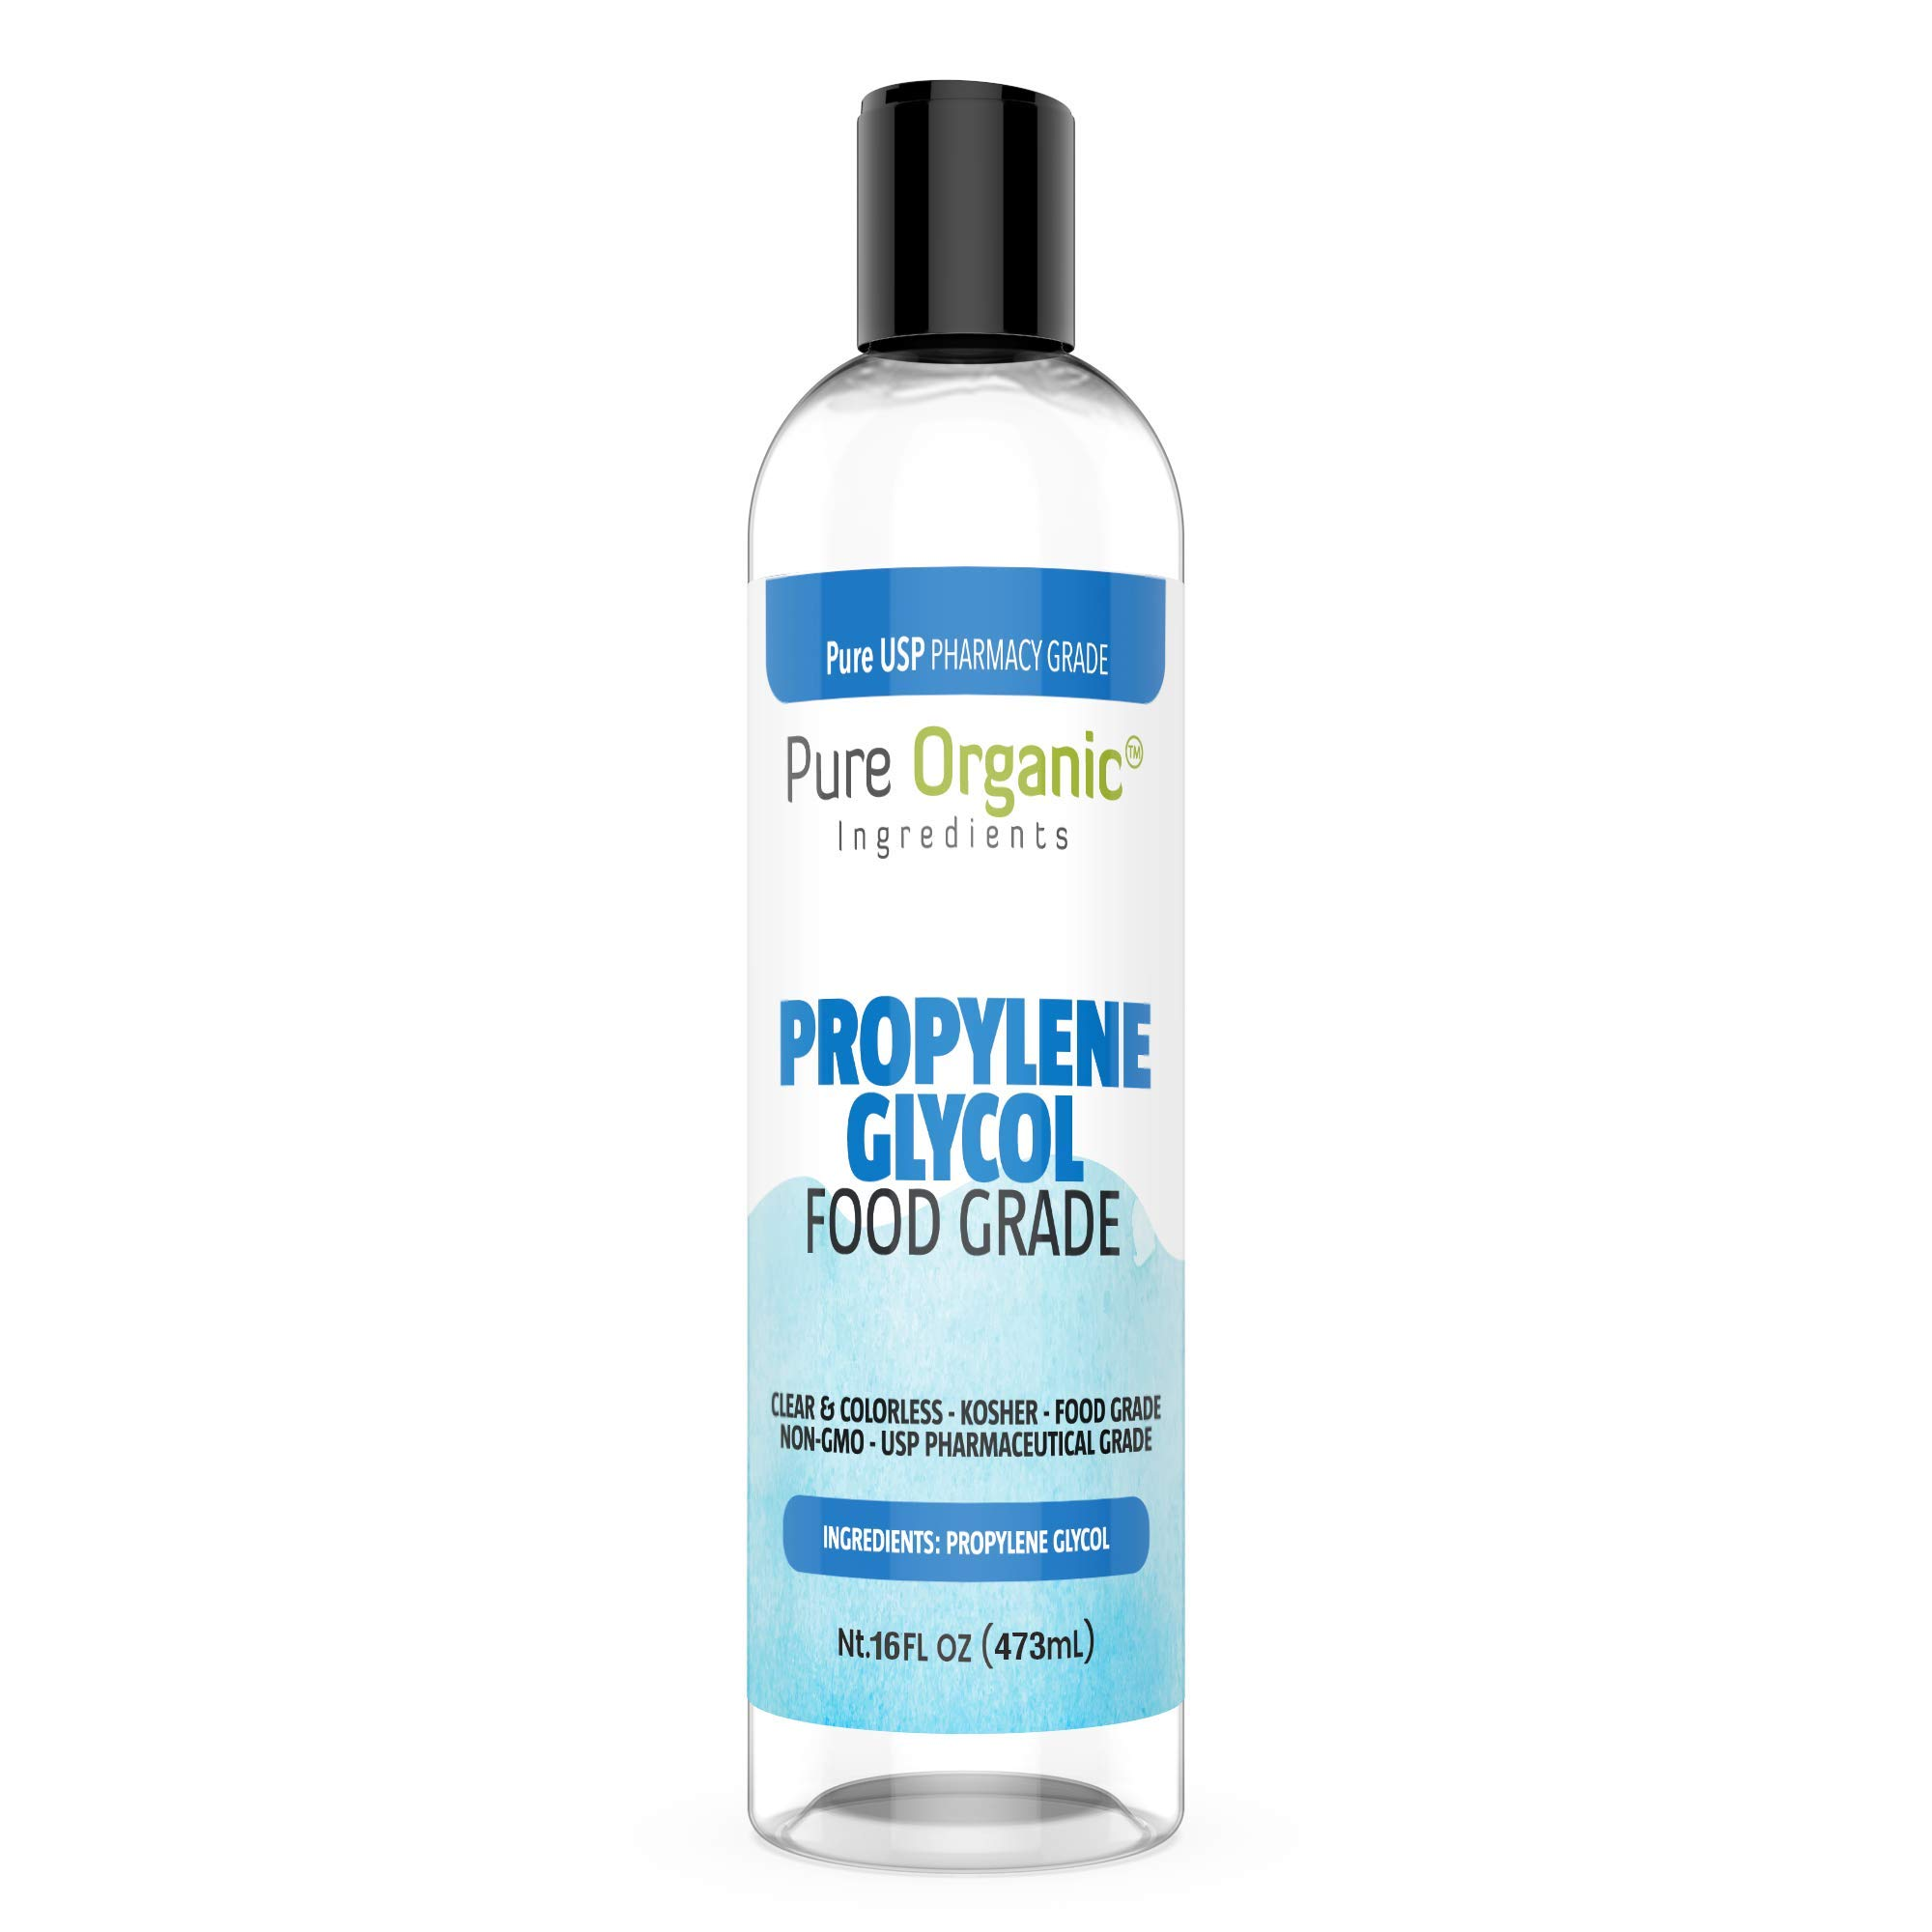 Propylene Glycol (16 oz.) by Pure Organic Ingredients, Lower Freezing Point, Use in Moisturizers and Cosmetics, Humectant, Preservative, Solvent, Eco-Friendly Antifreeze, Winterize Water Systems by Pure Organic Ingredients